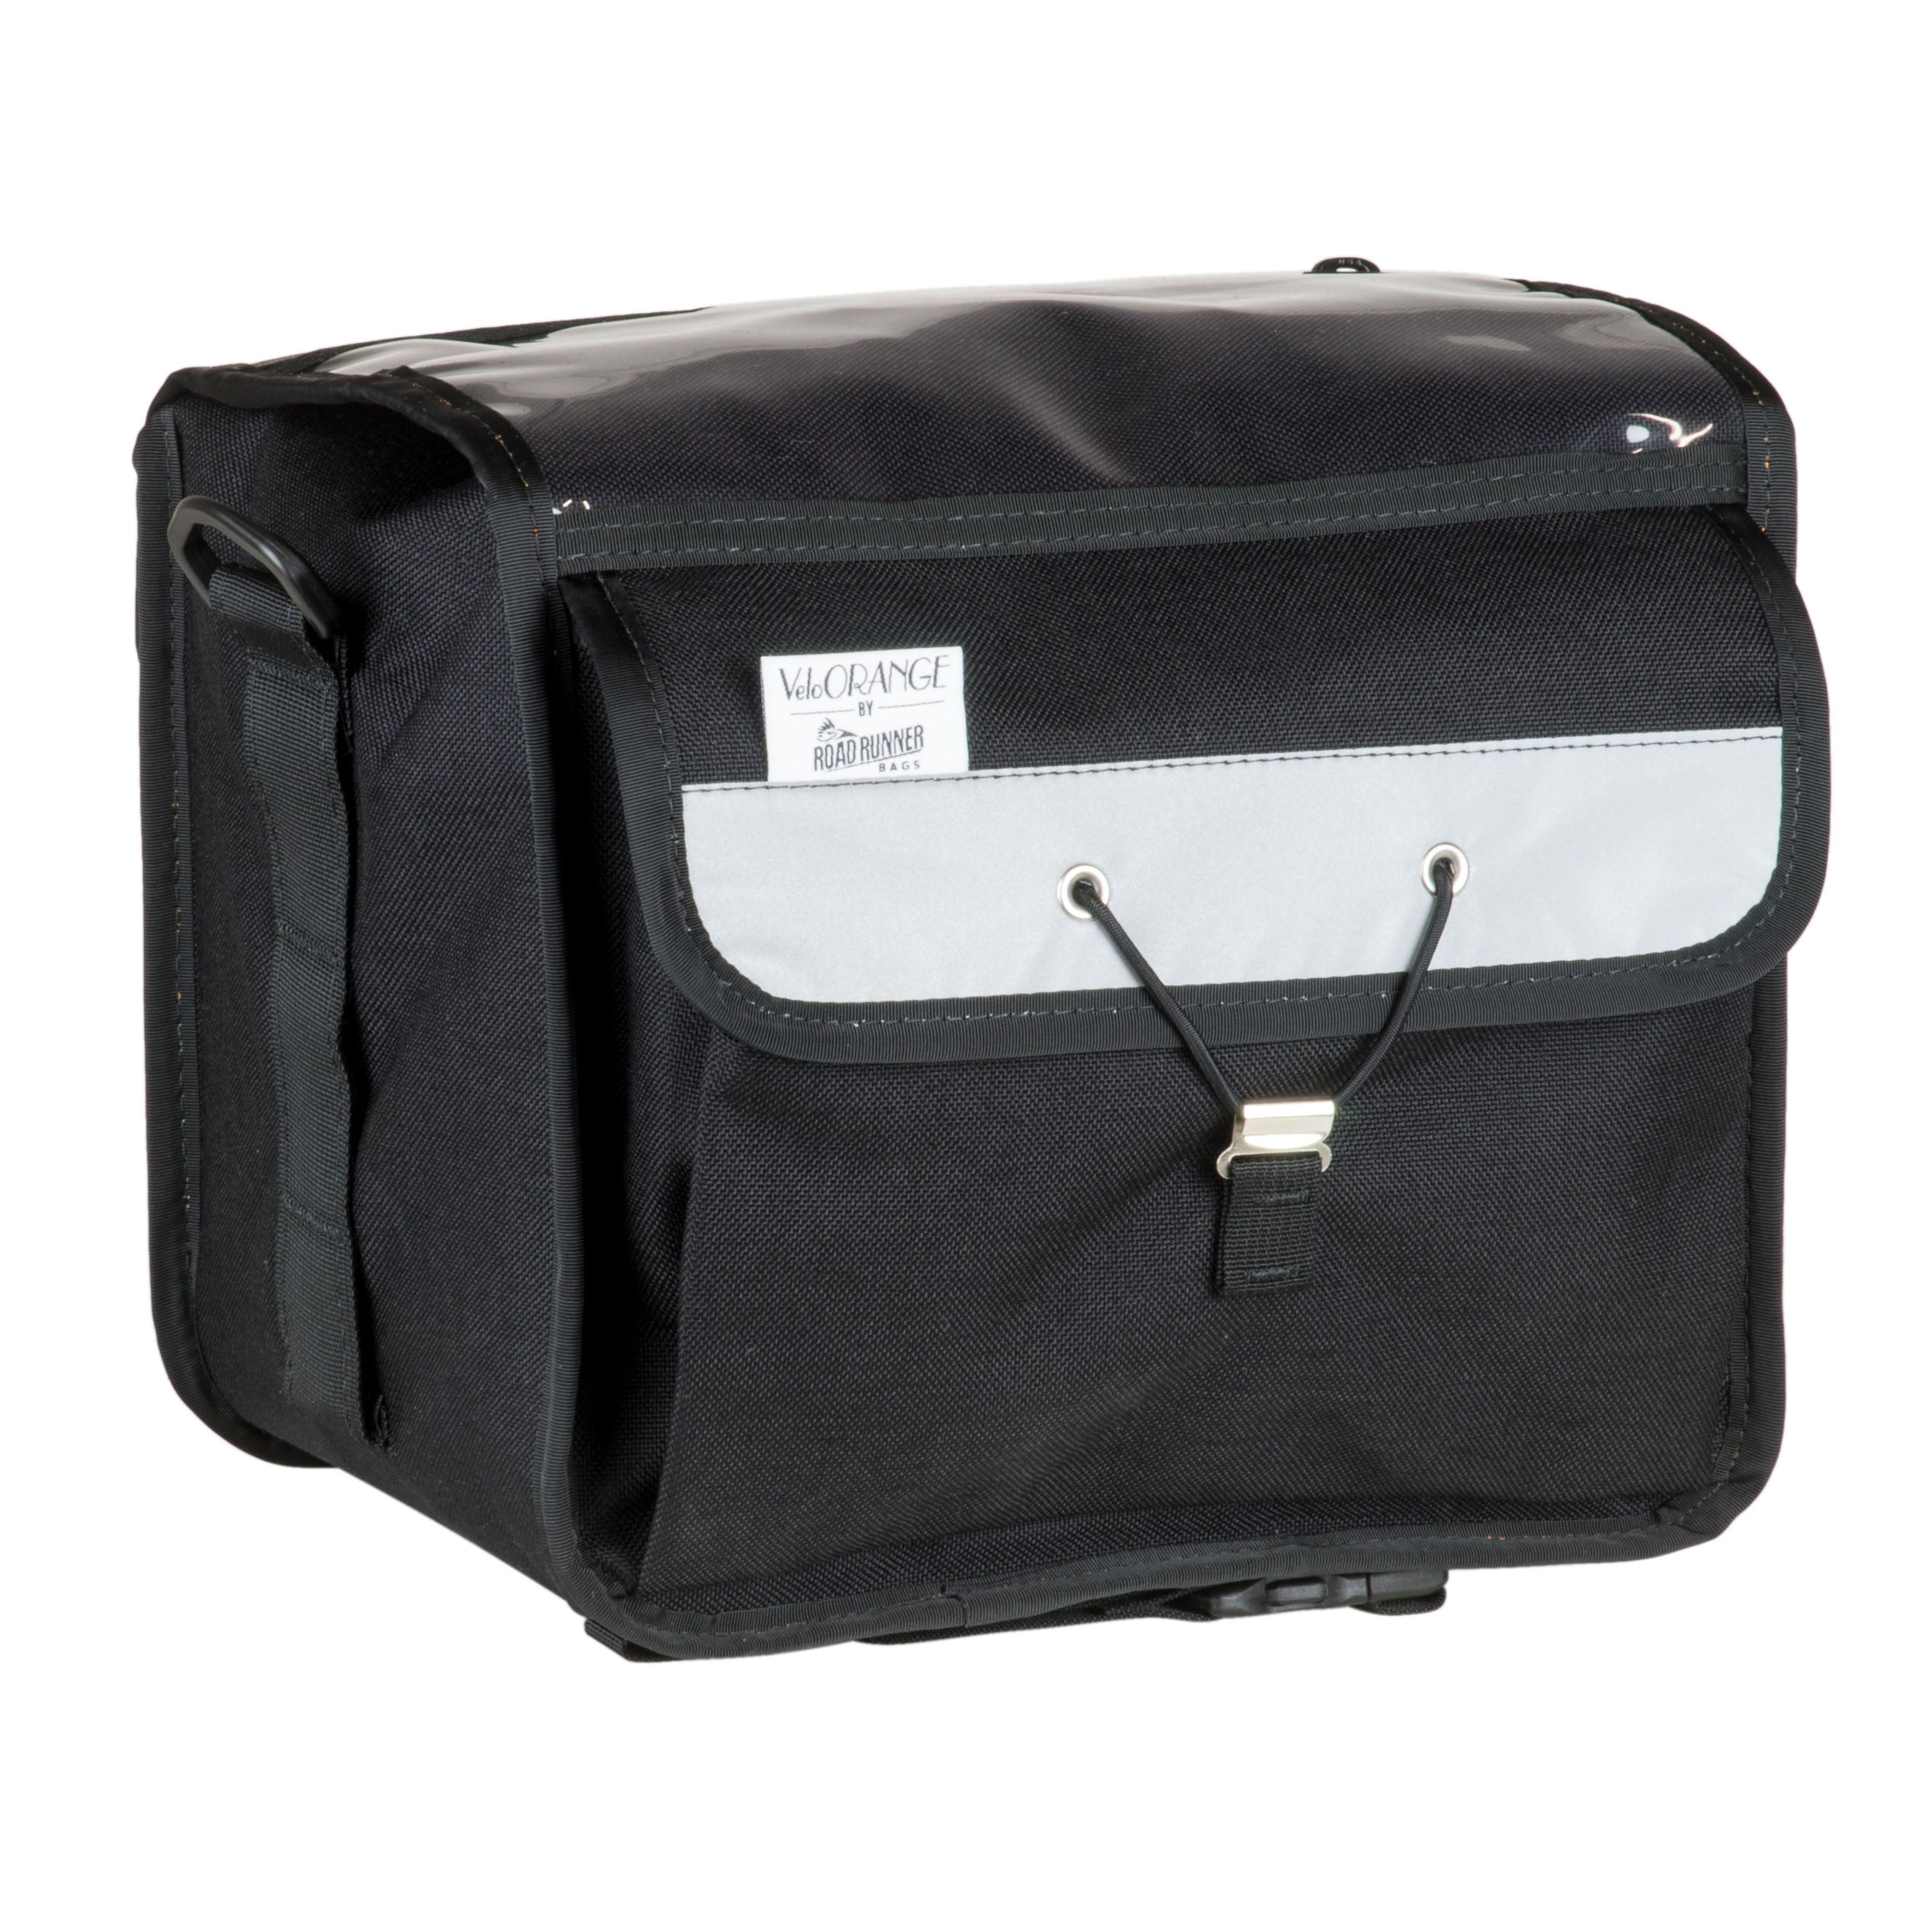 Velo Orange Randonneur Handlebar Bag, Black